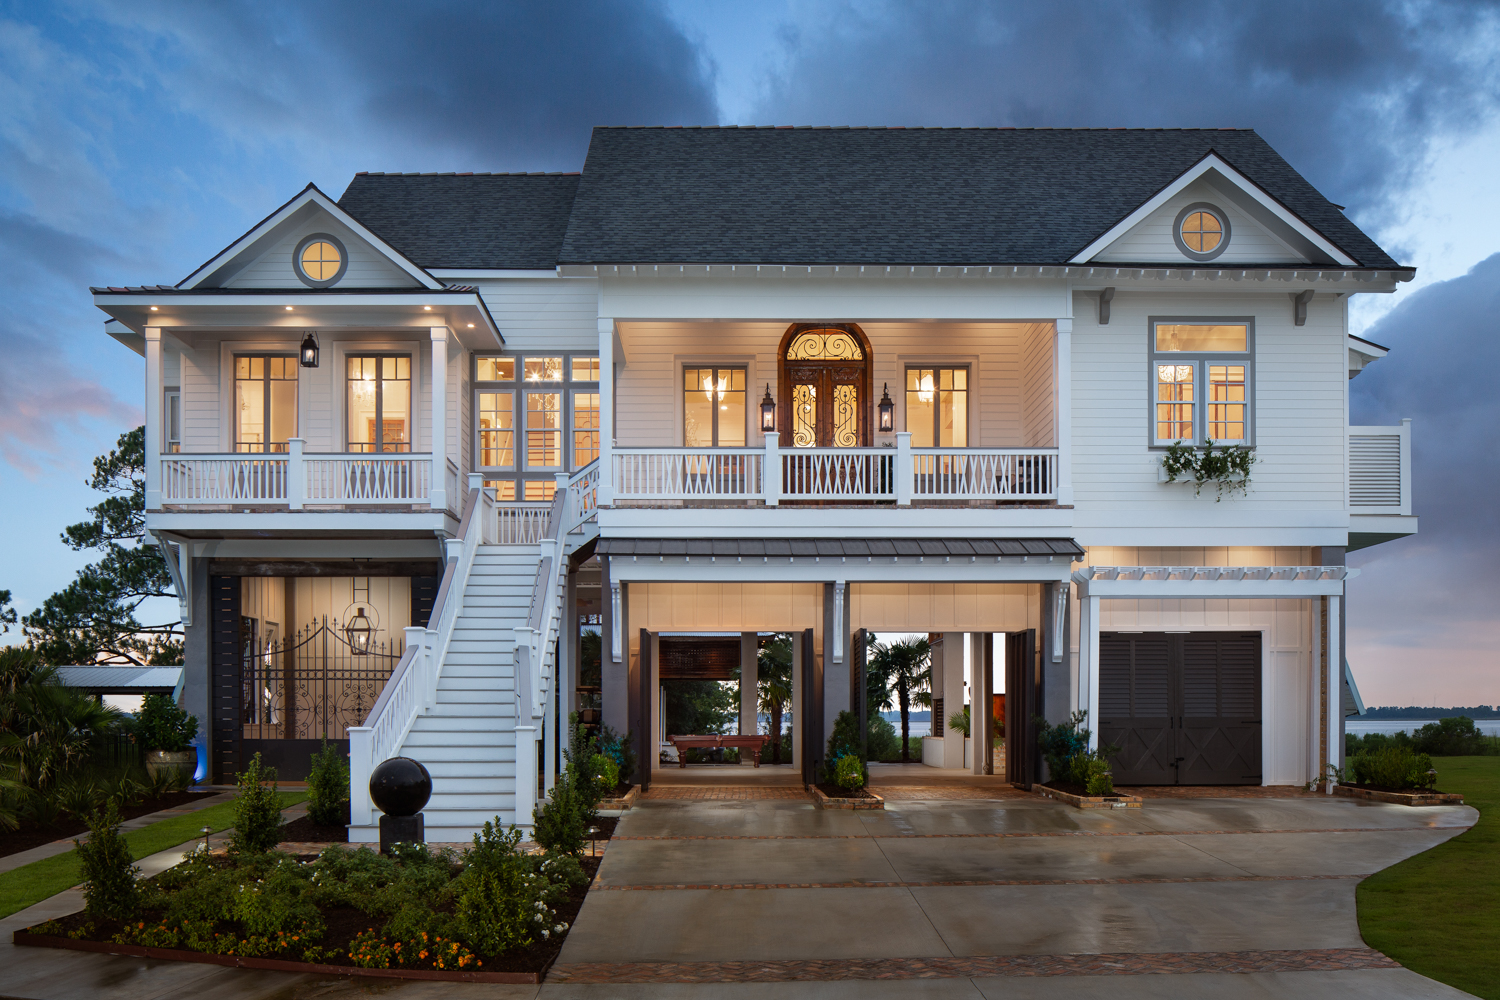 Project Ashwood - Waterfront residential new construction in Pass Christian Mississippi photographed for Watters Architecture